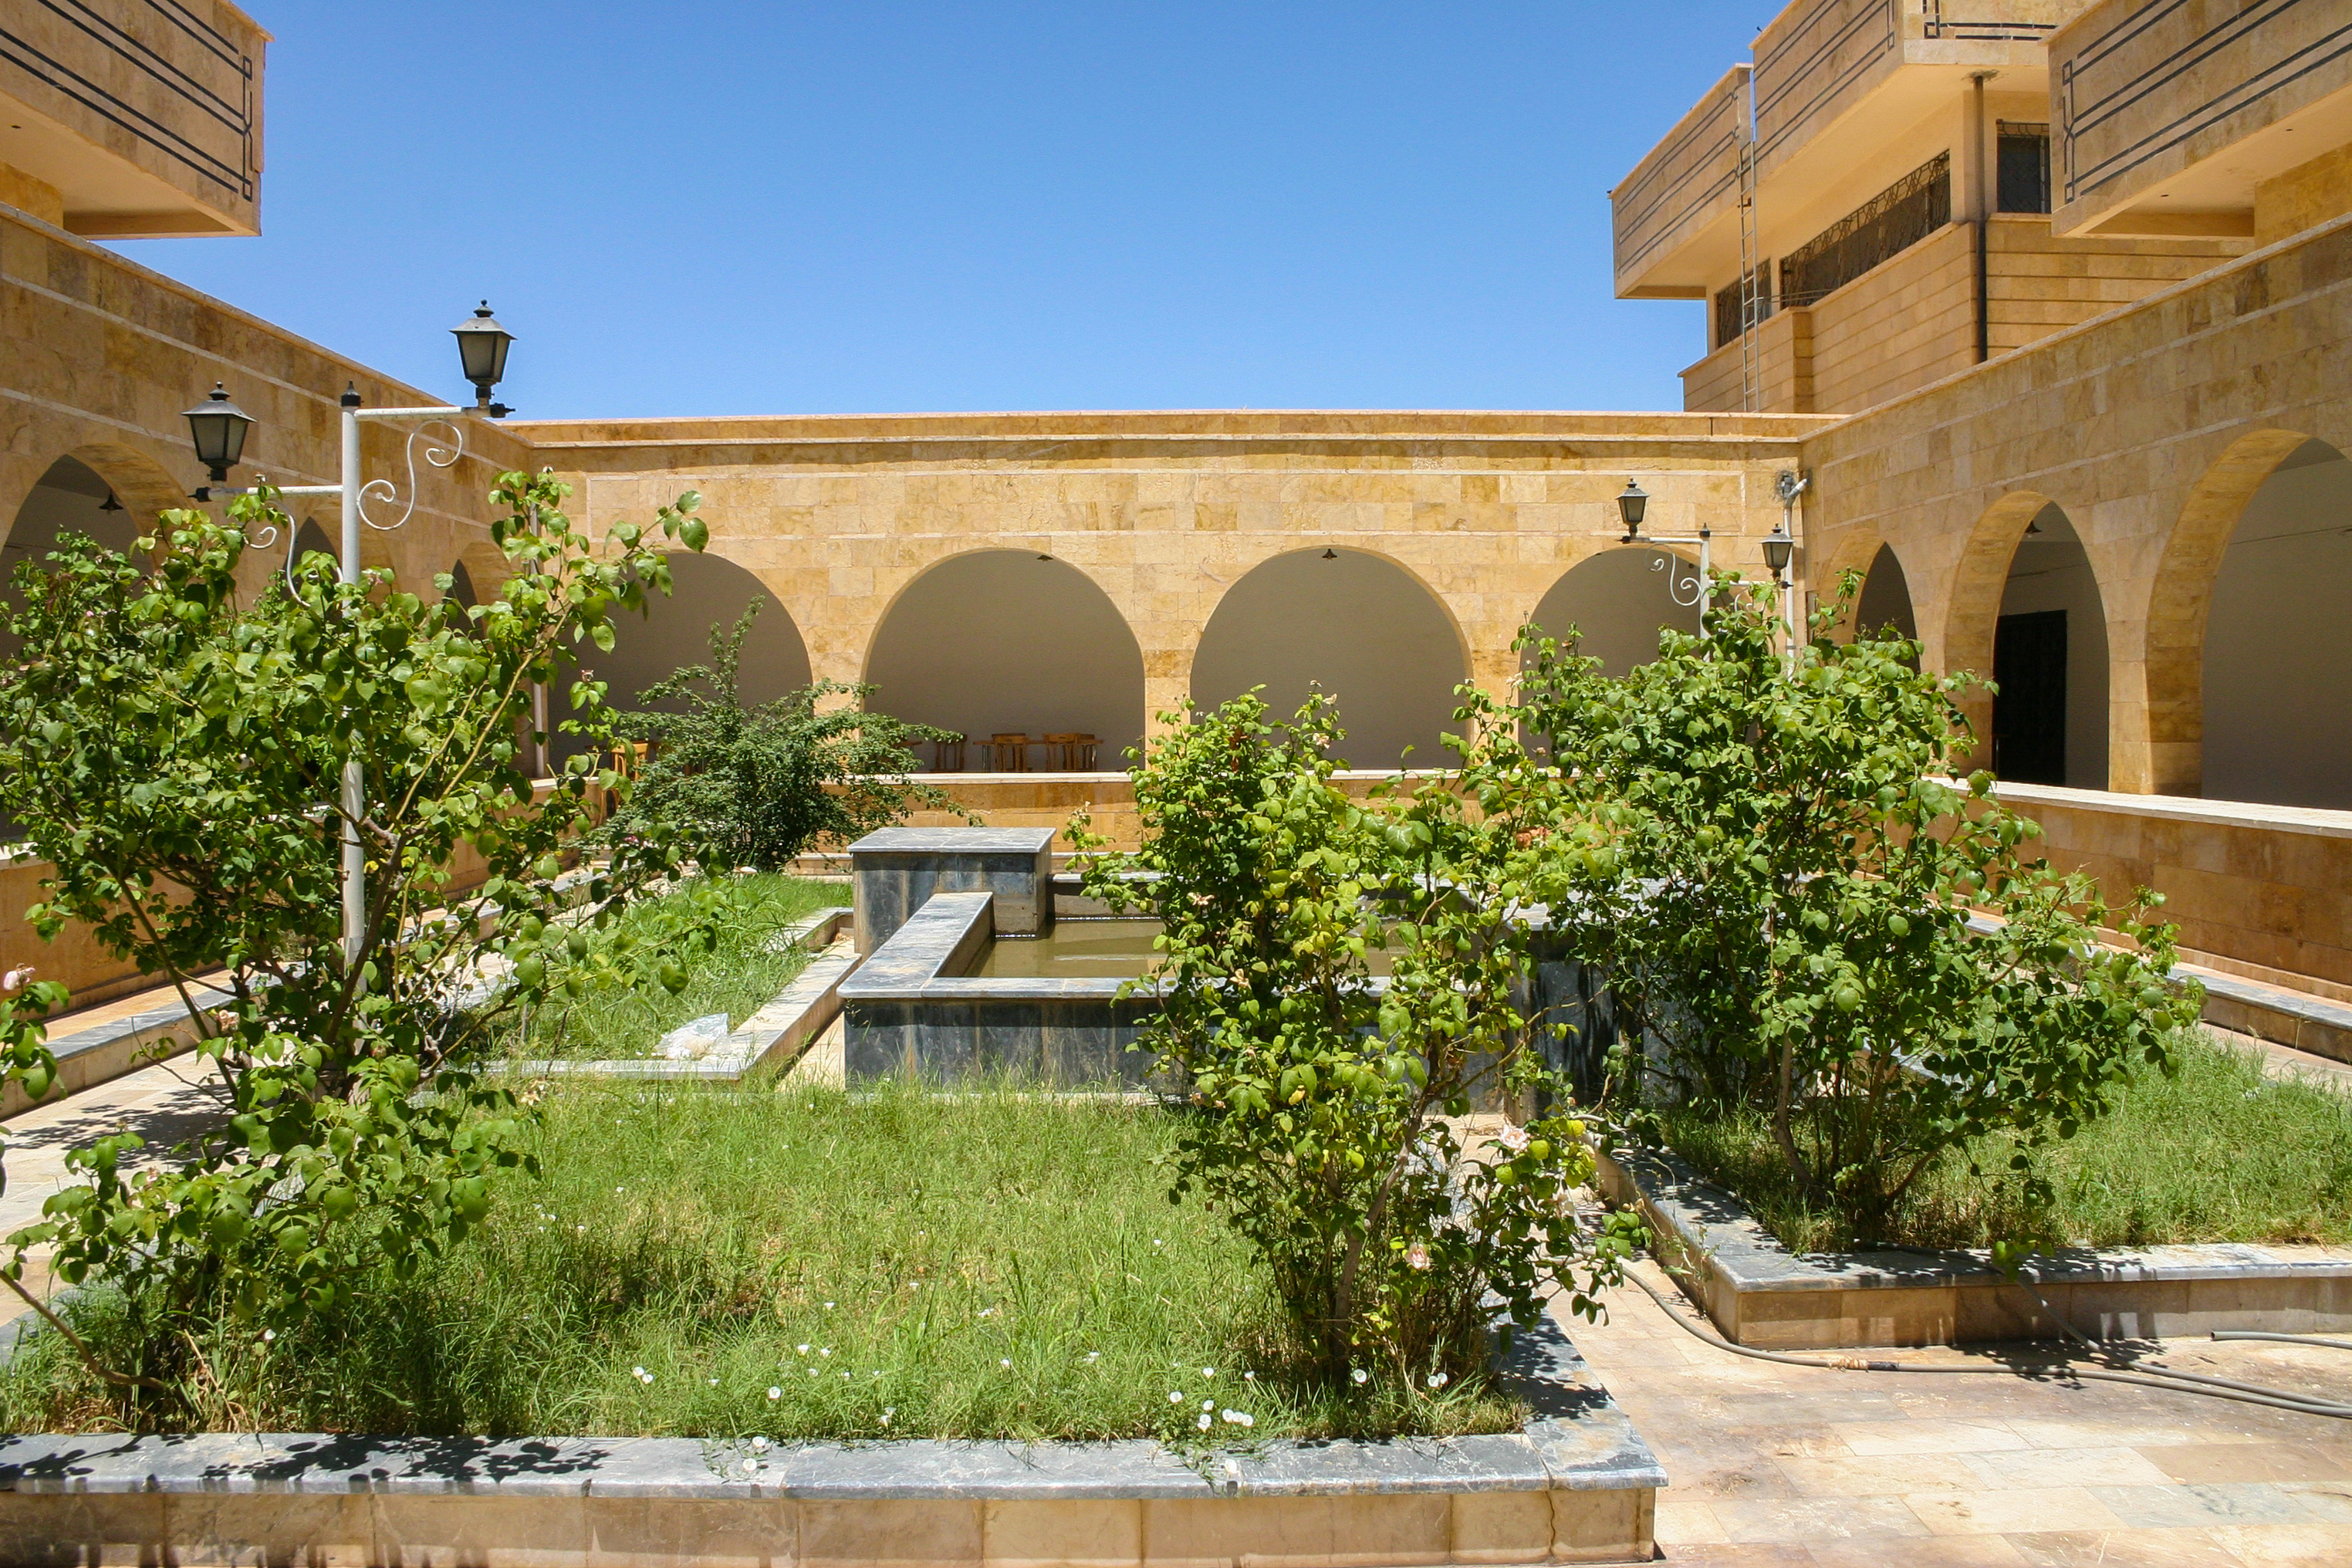 Courtyard of the Deir ez-Zor Museum, Syria, in June 2005 by Zoeperkoe